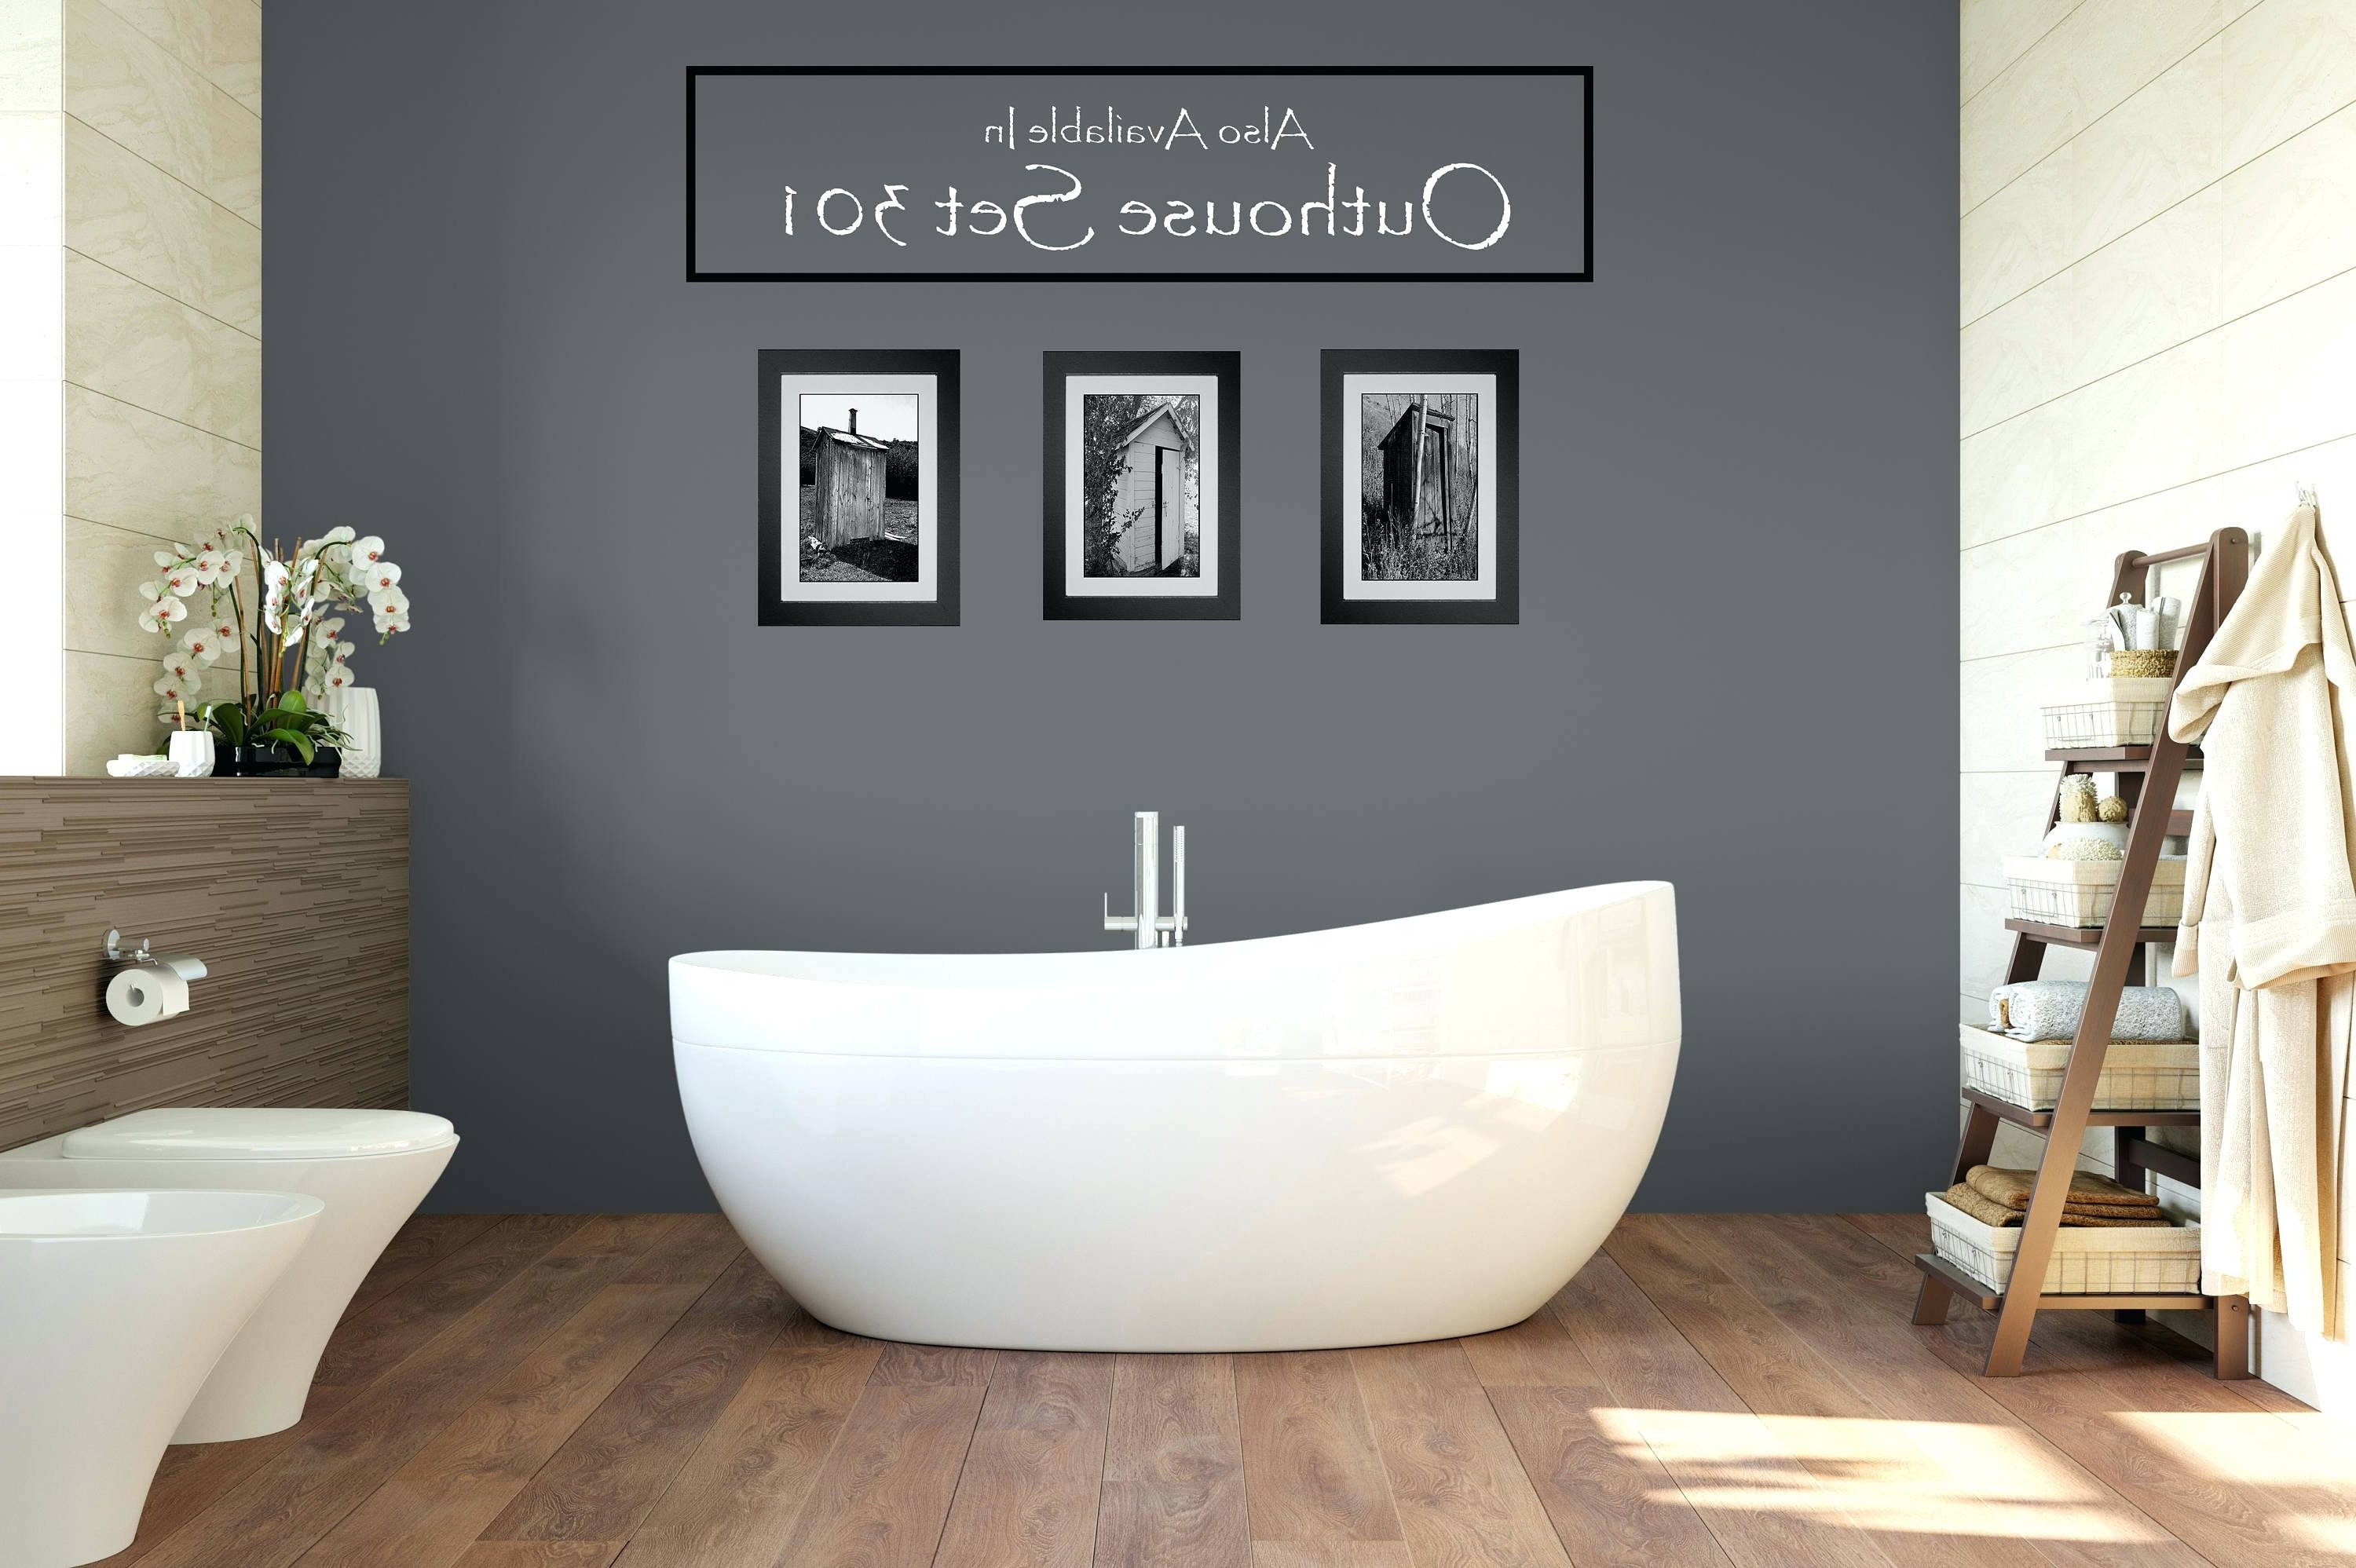 Bathroom Wall Art and Decor Inspirational 15 Best Ideas Of Bed Bath and Beyond 3d Wall Art